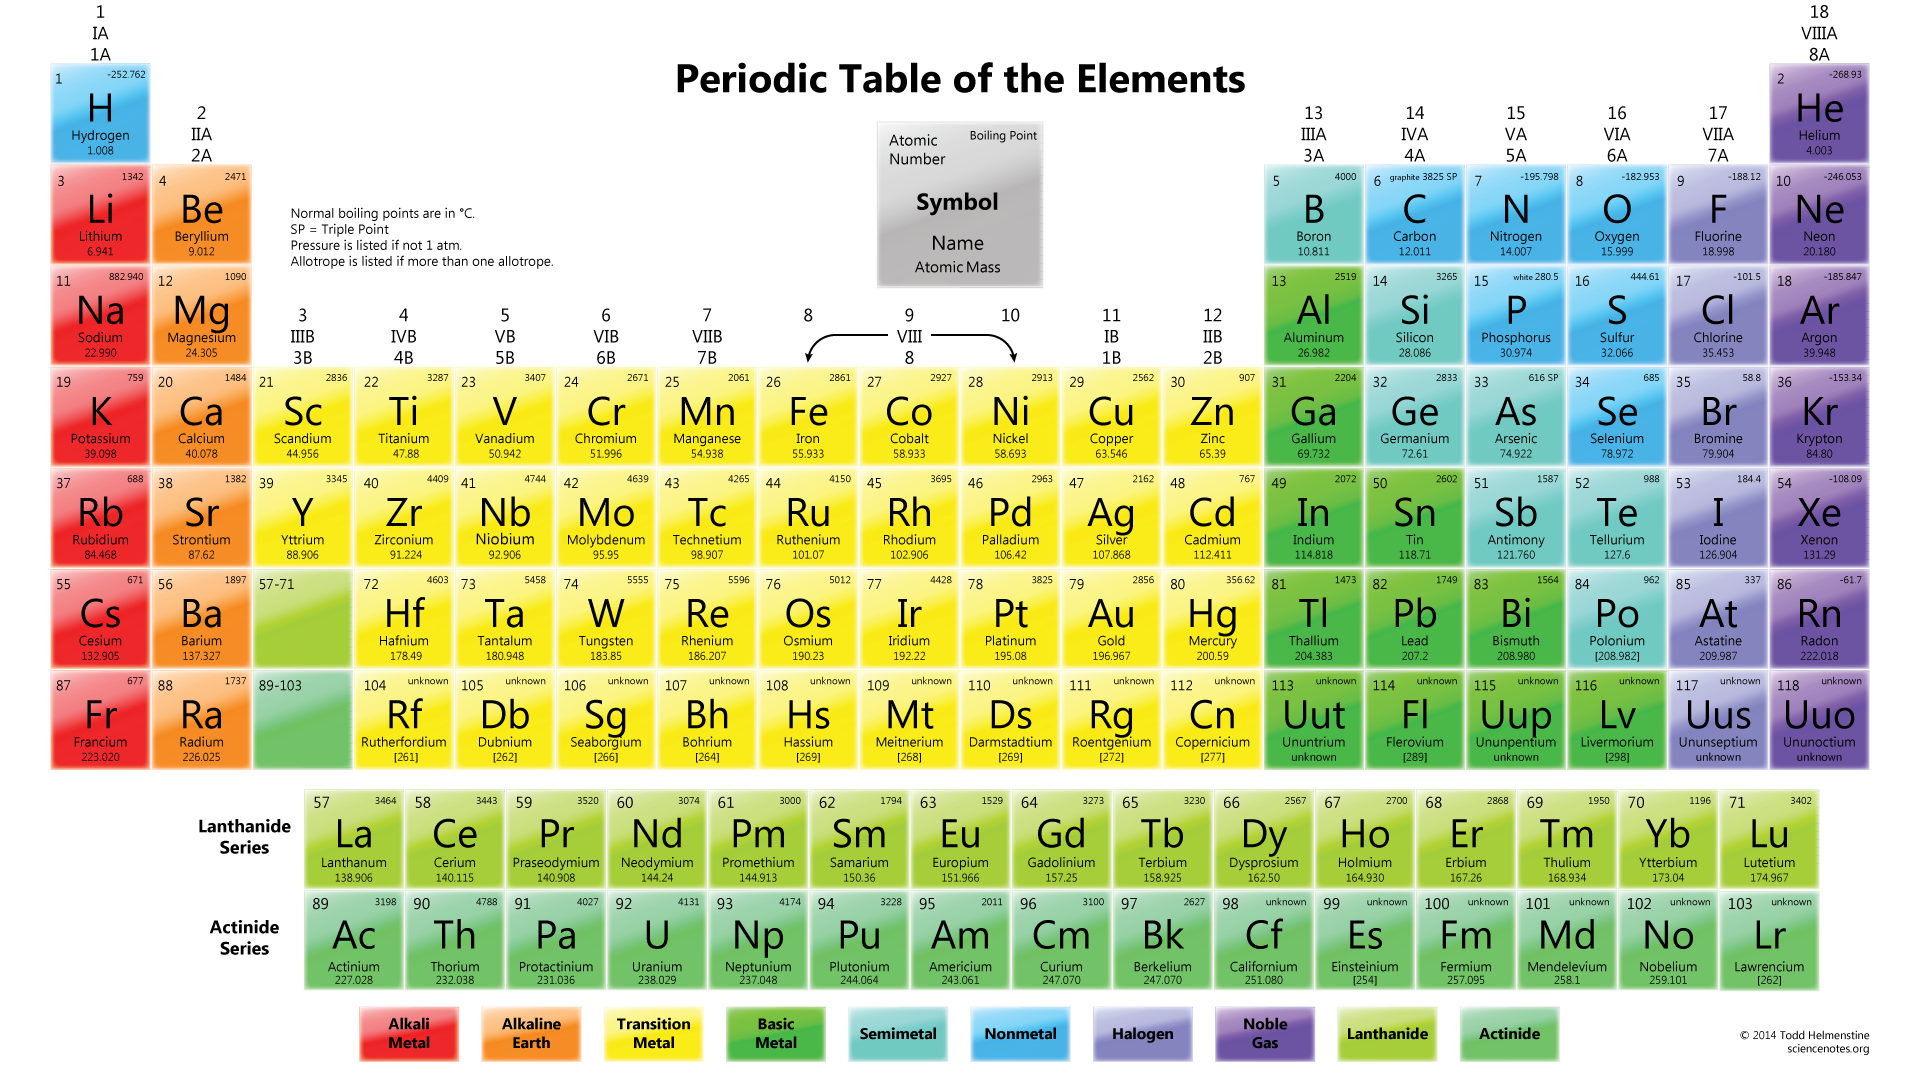 30 printable periodic tables for chemistry science notes and color periodic table of the elements with boiling points gamestrikefo Gallery